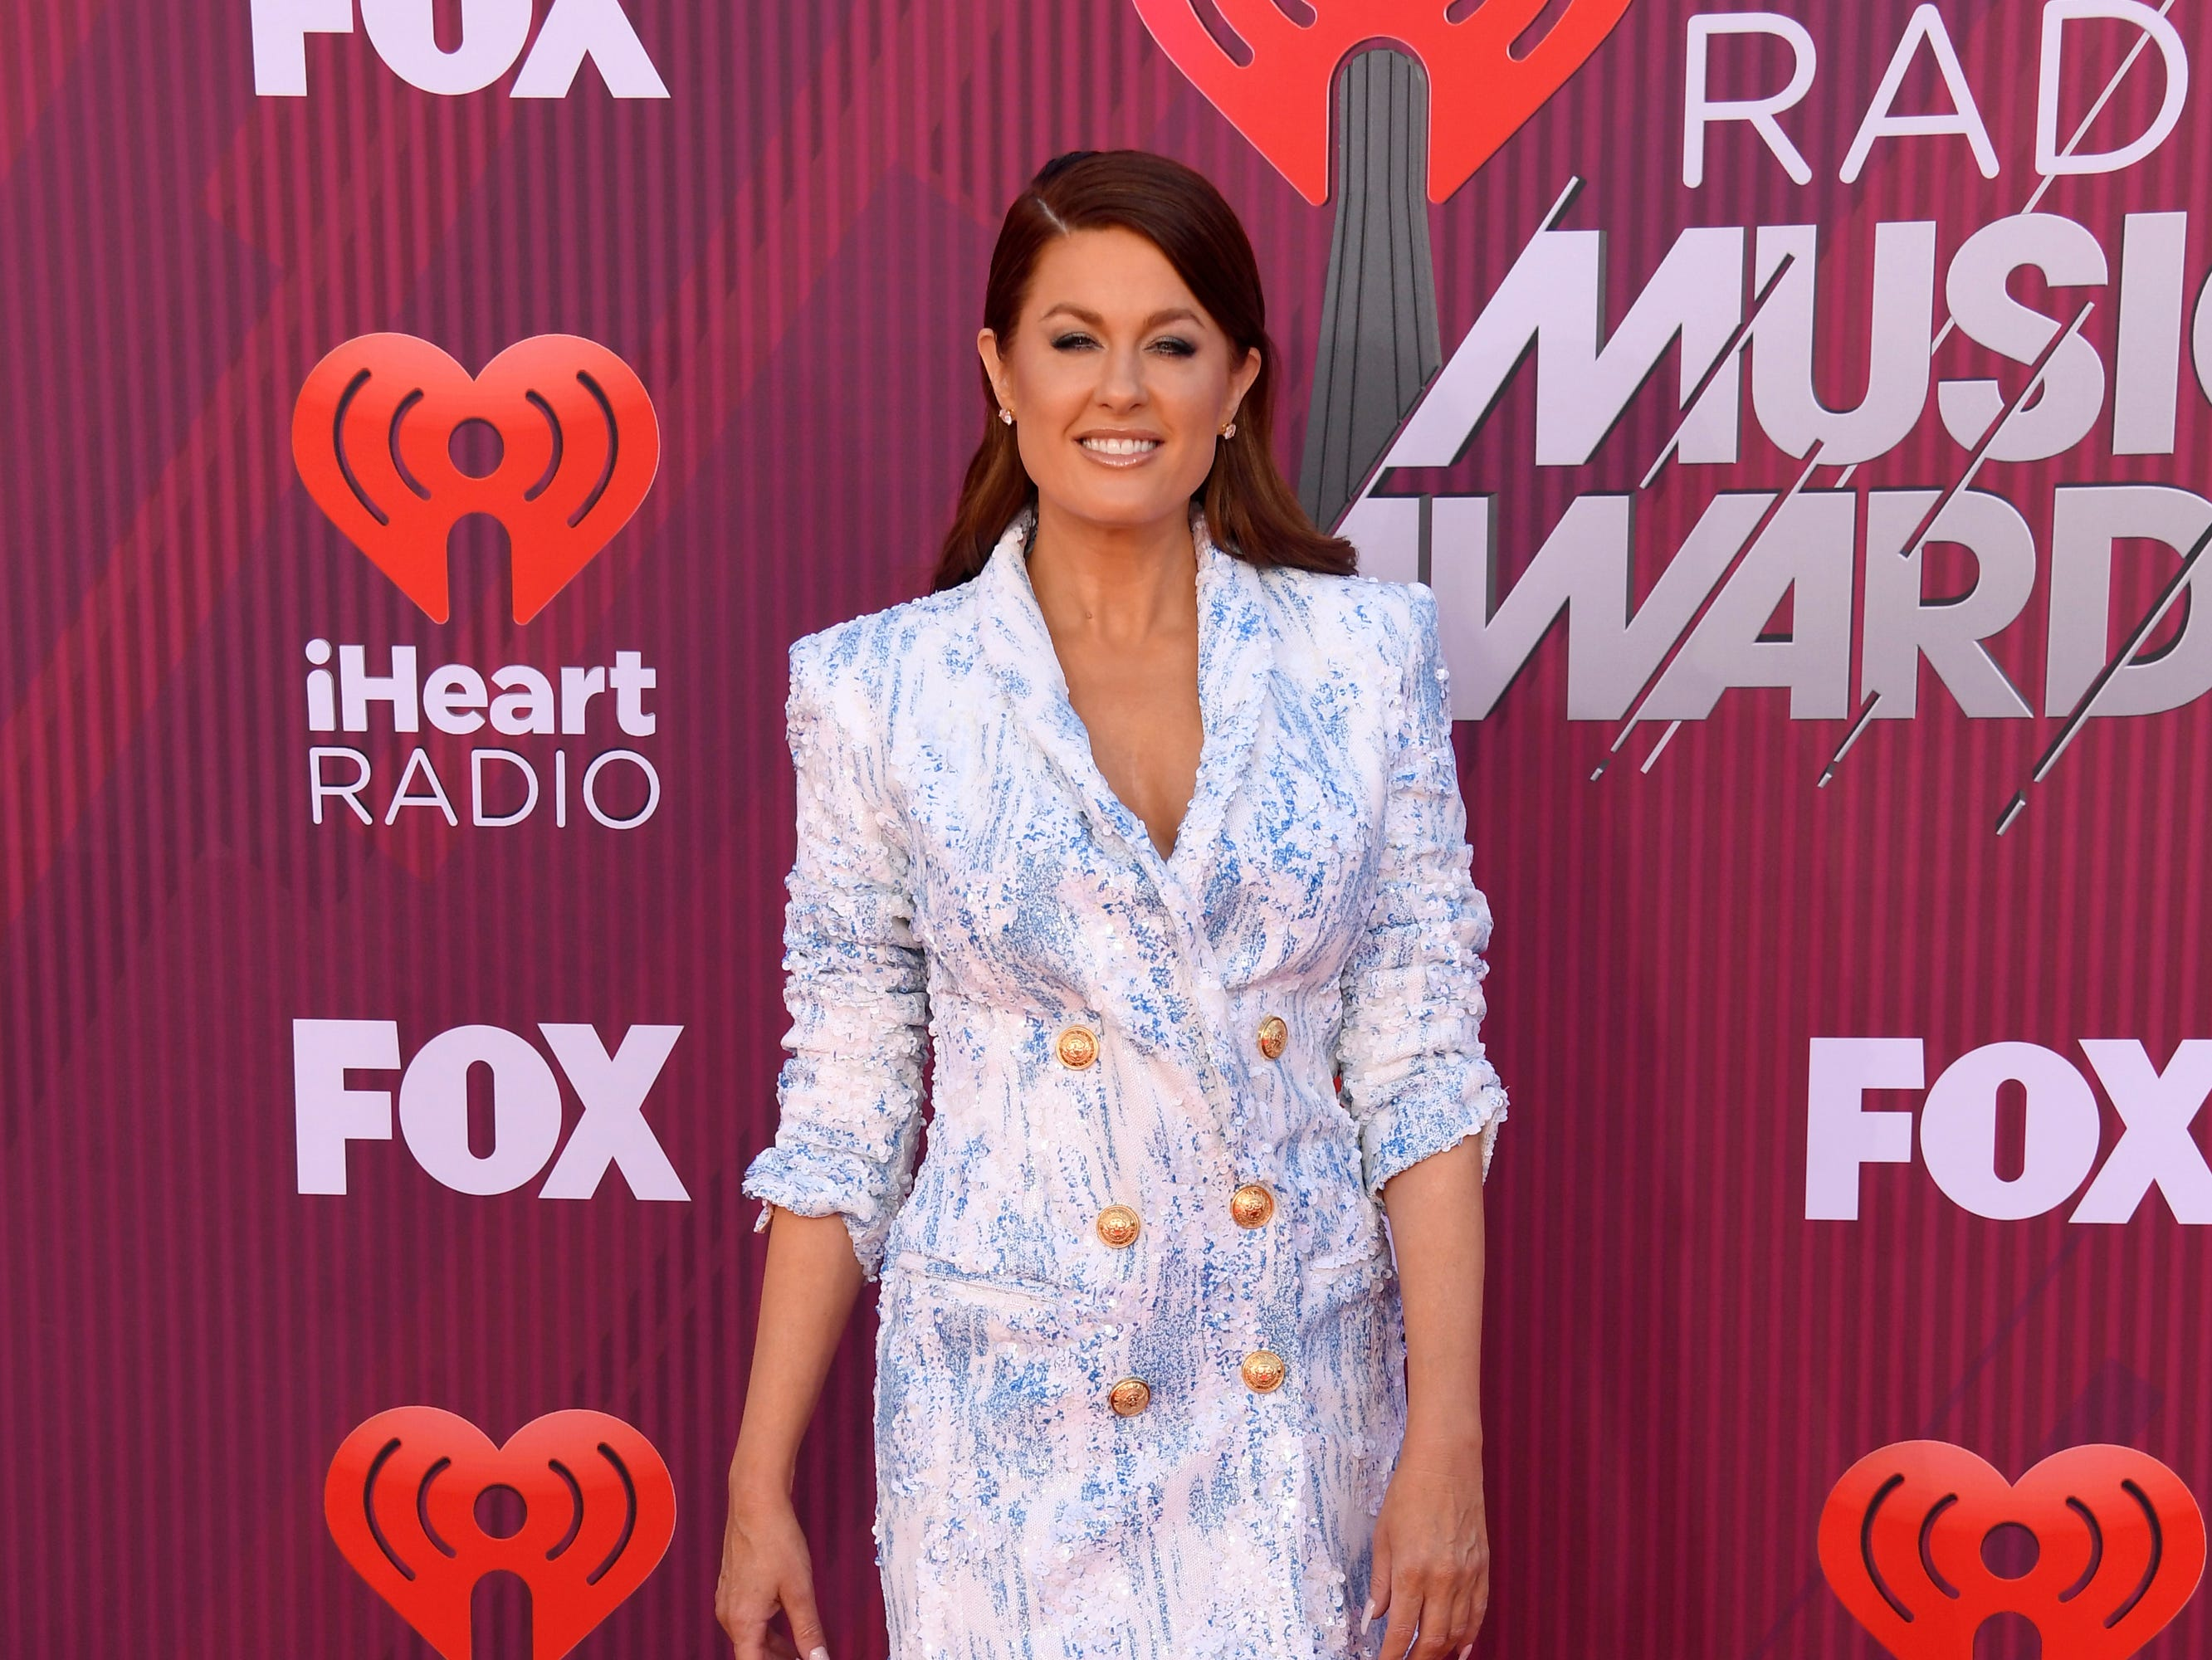 Hilary Roberts arrives at the iHeartRadio Music Awards.